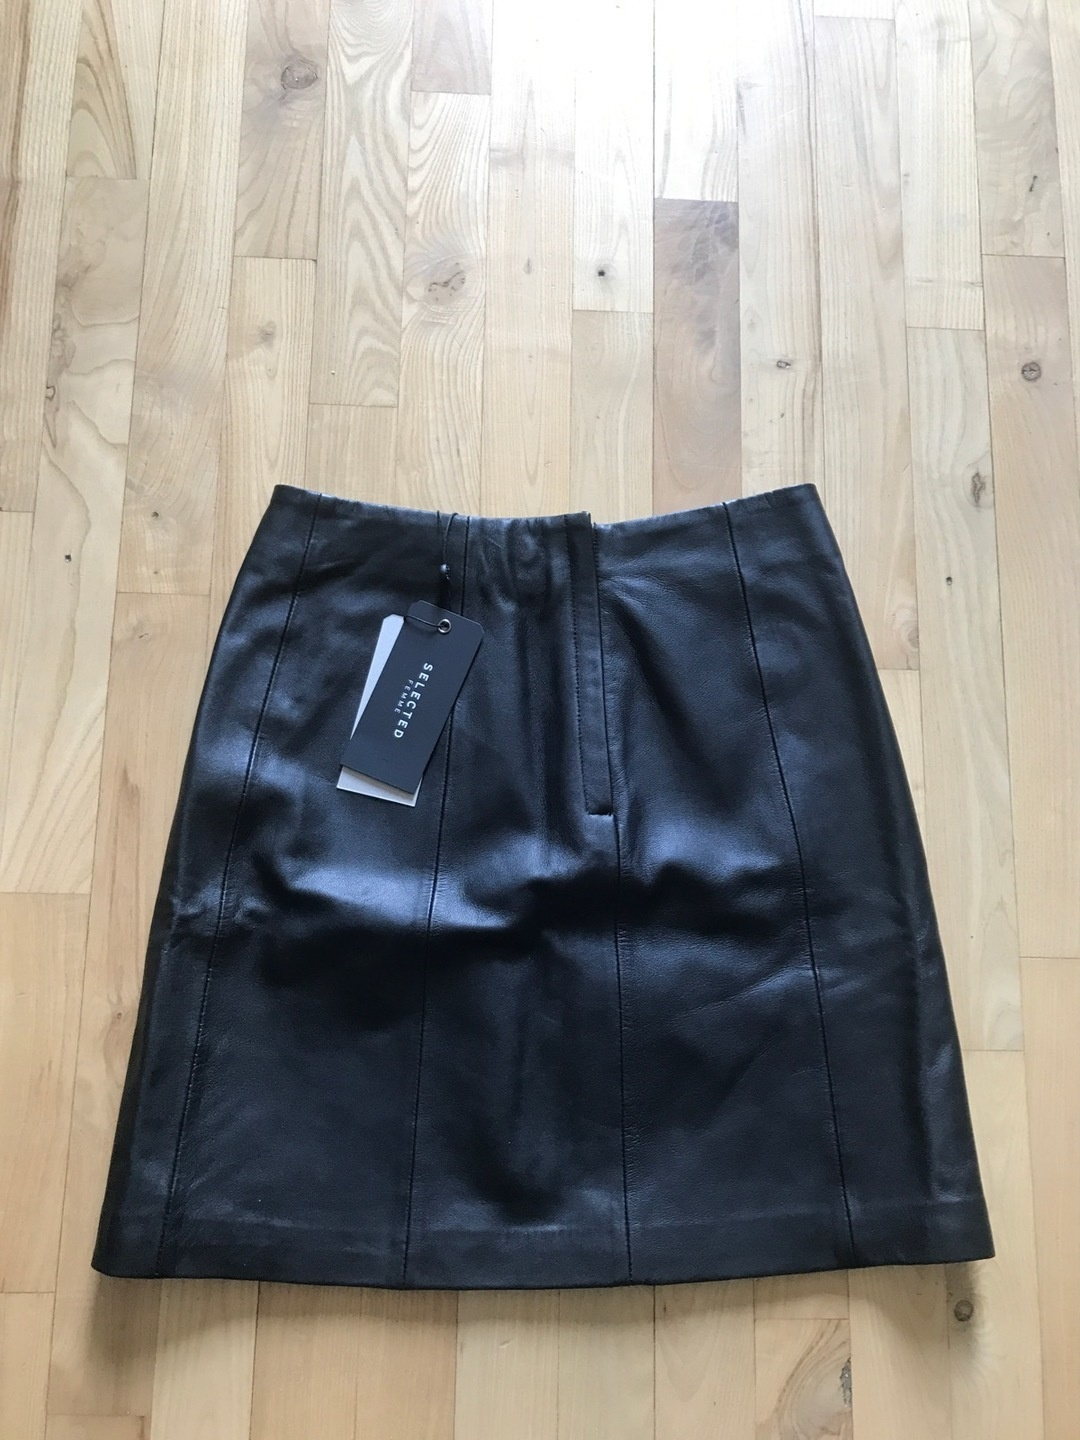 Women's skirts - SELECTED FEMME photo 2